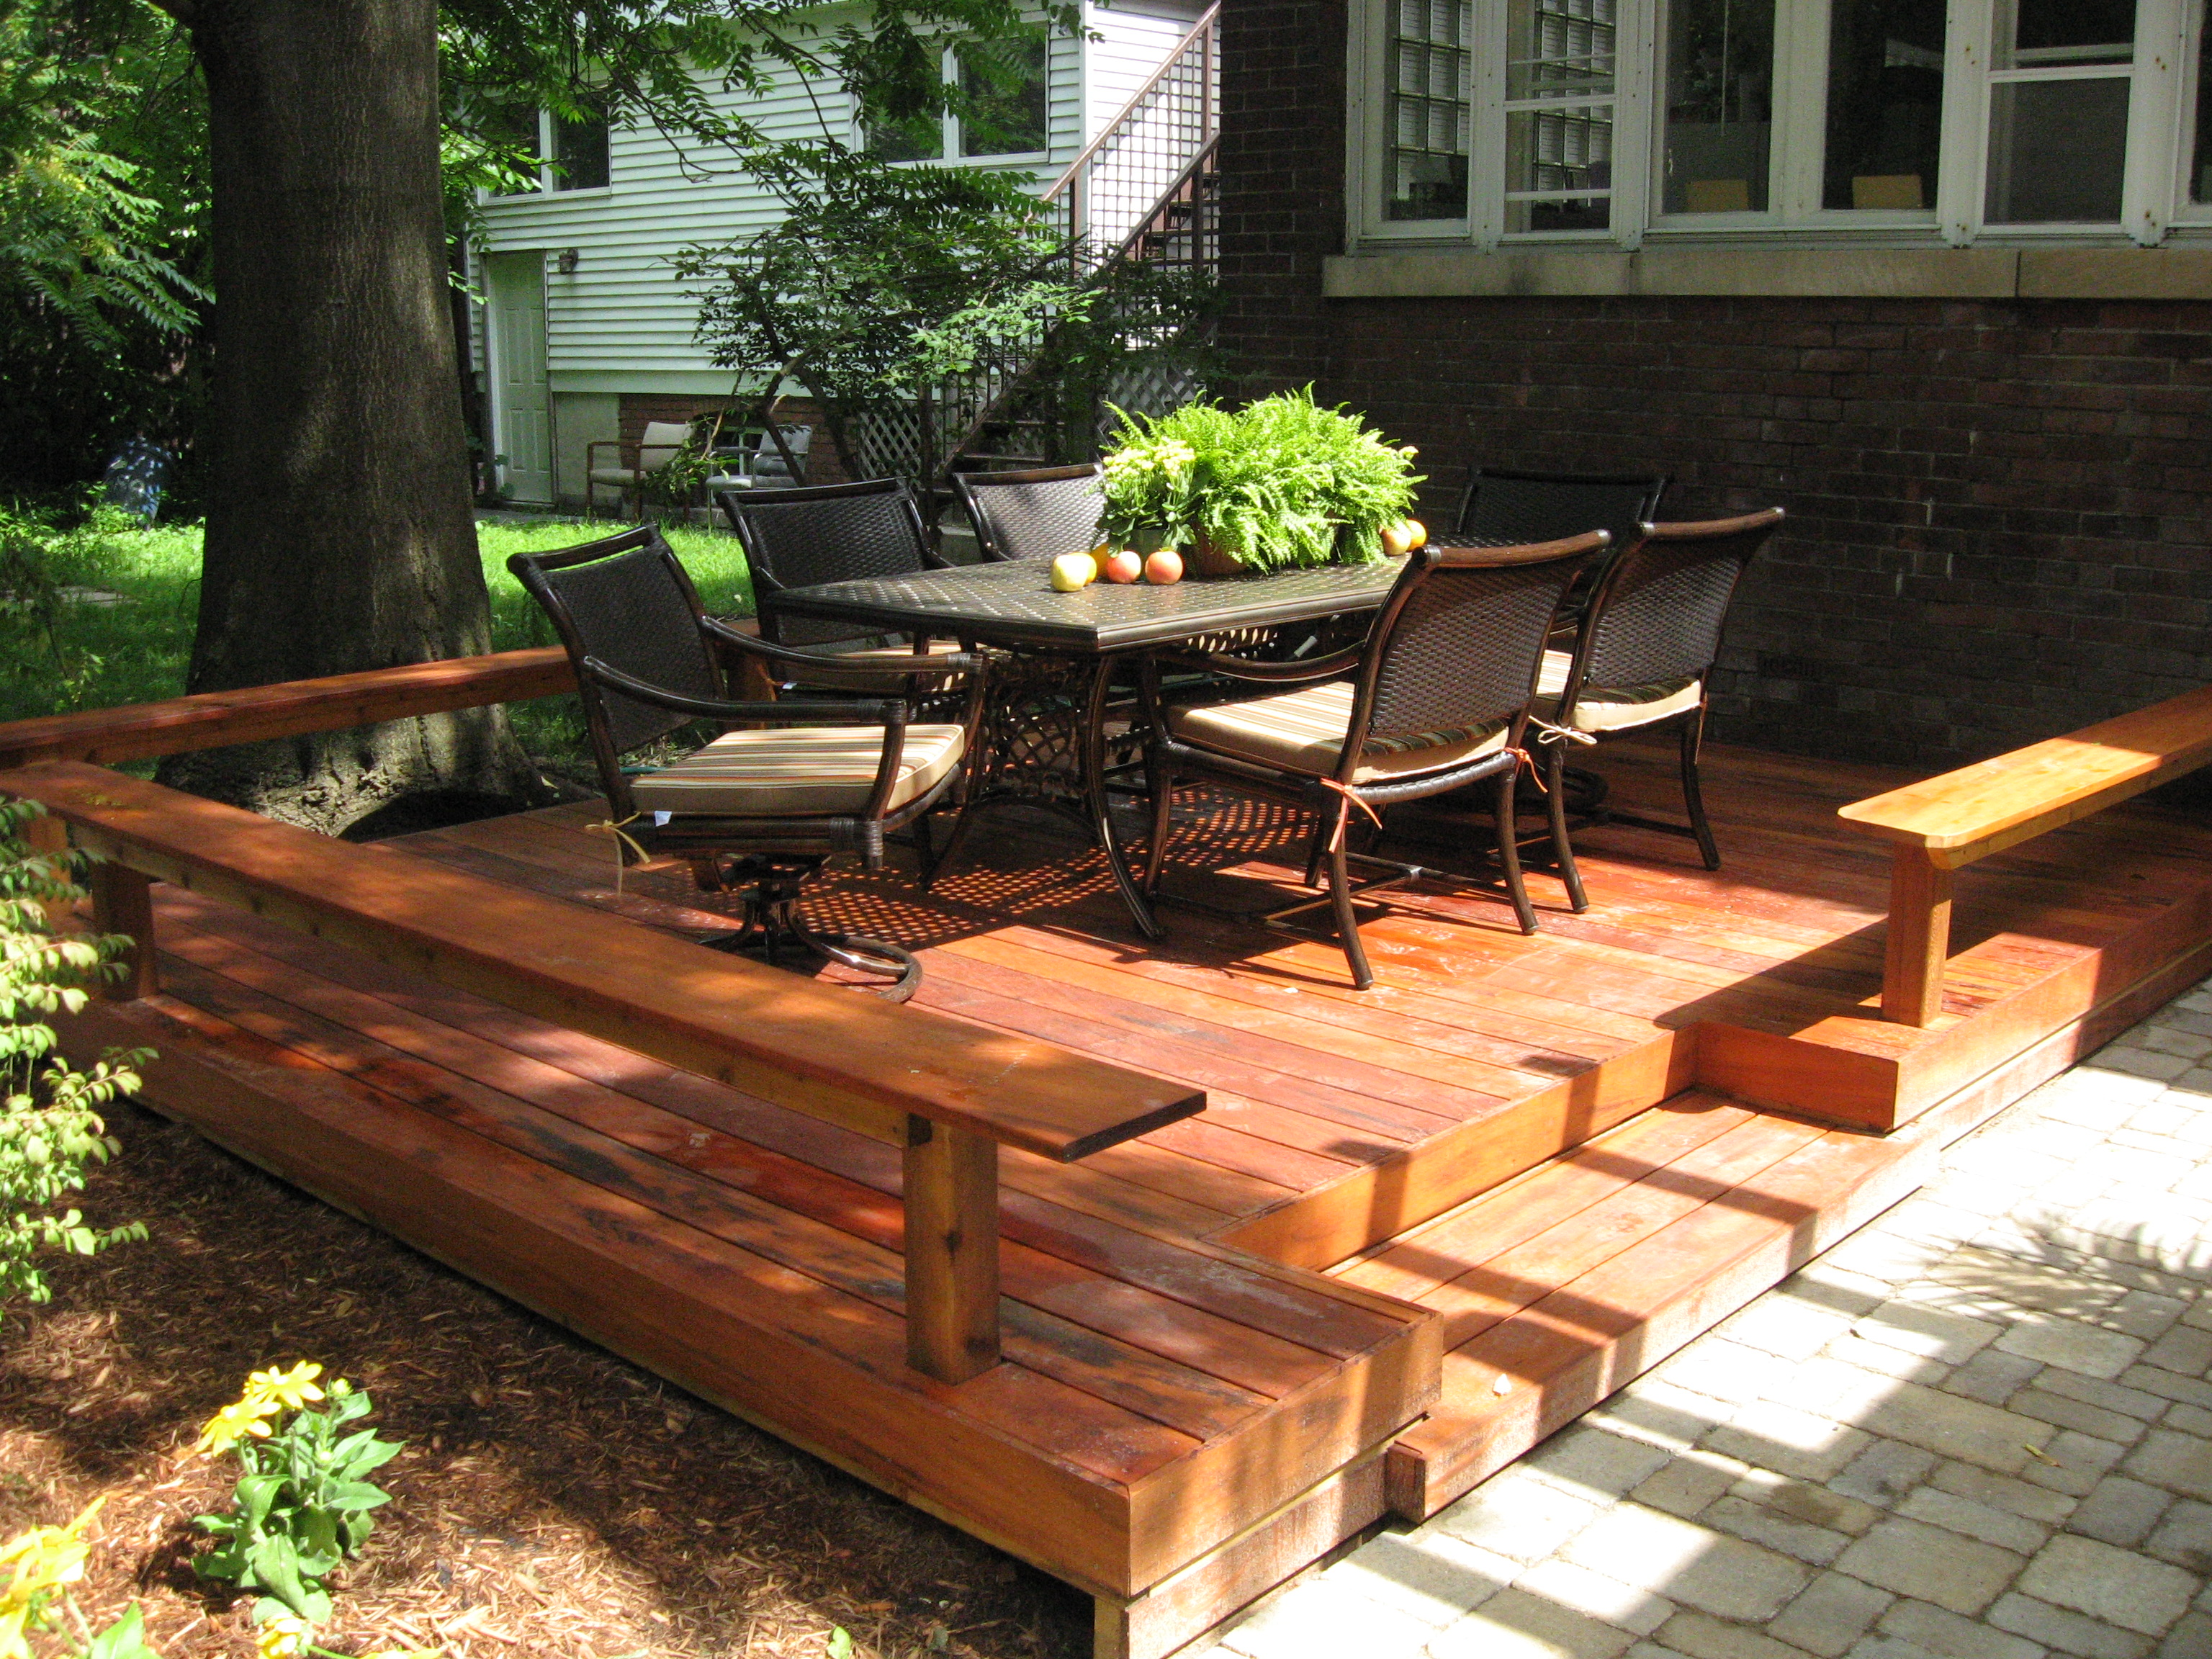 Deck vs patio what is best for you huffpost for Backyard deck pictures